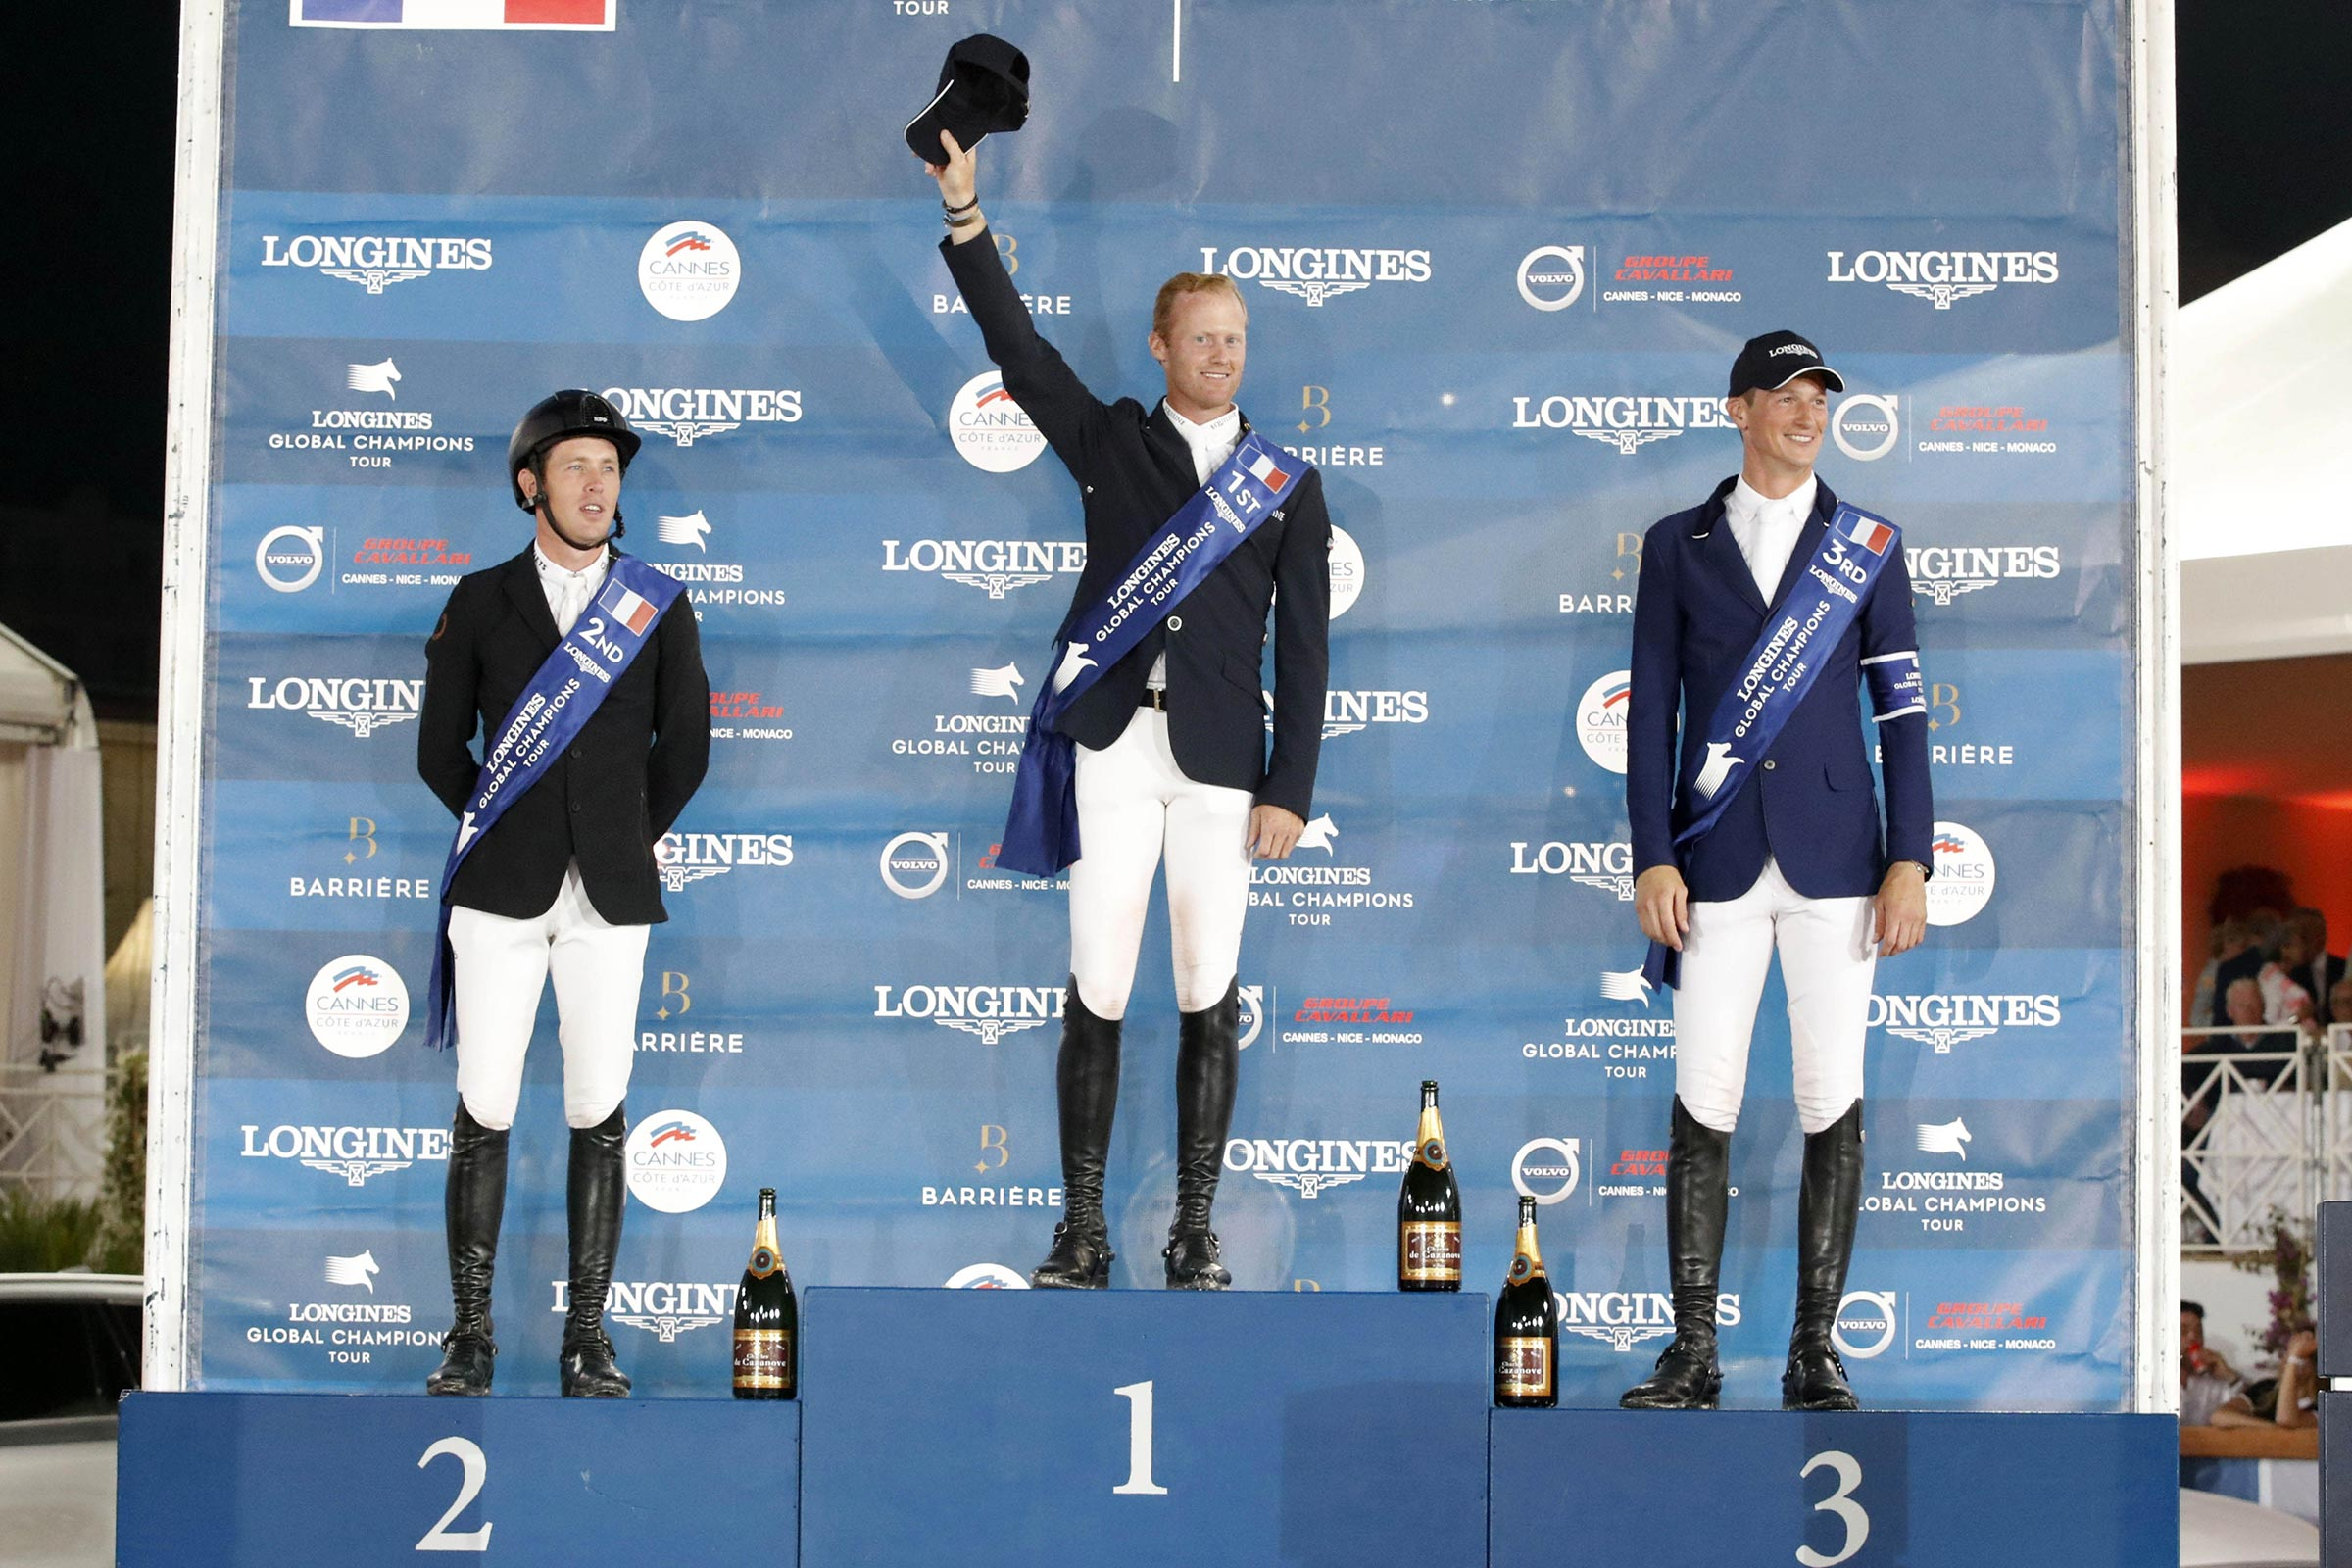 The Podium of LGCT of Cannes - 1st Niels Bruynseels, 2nd Scott Brash, 3rd Daniel Deusser ph.Stefano Grasso/LGCT CANNES 2019 DOWNLOAD